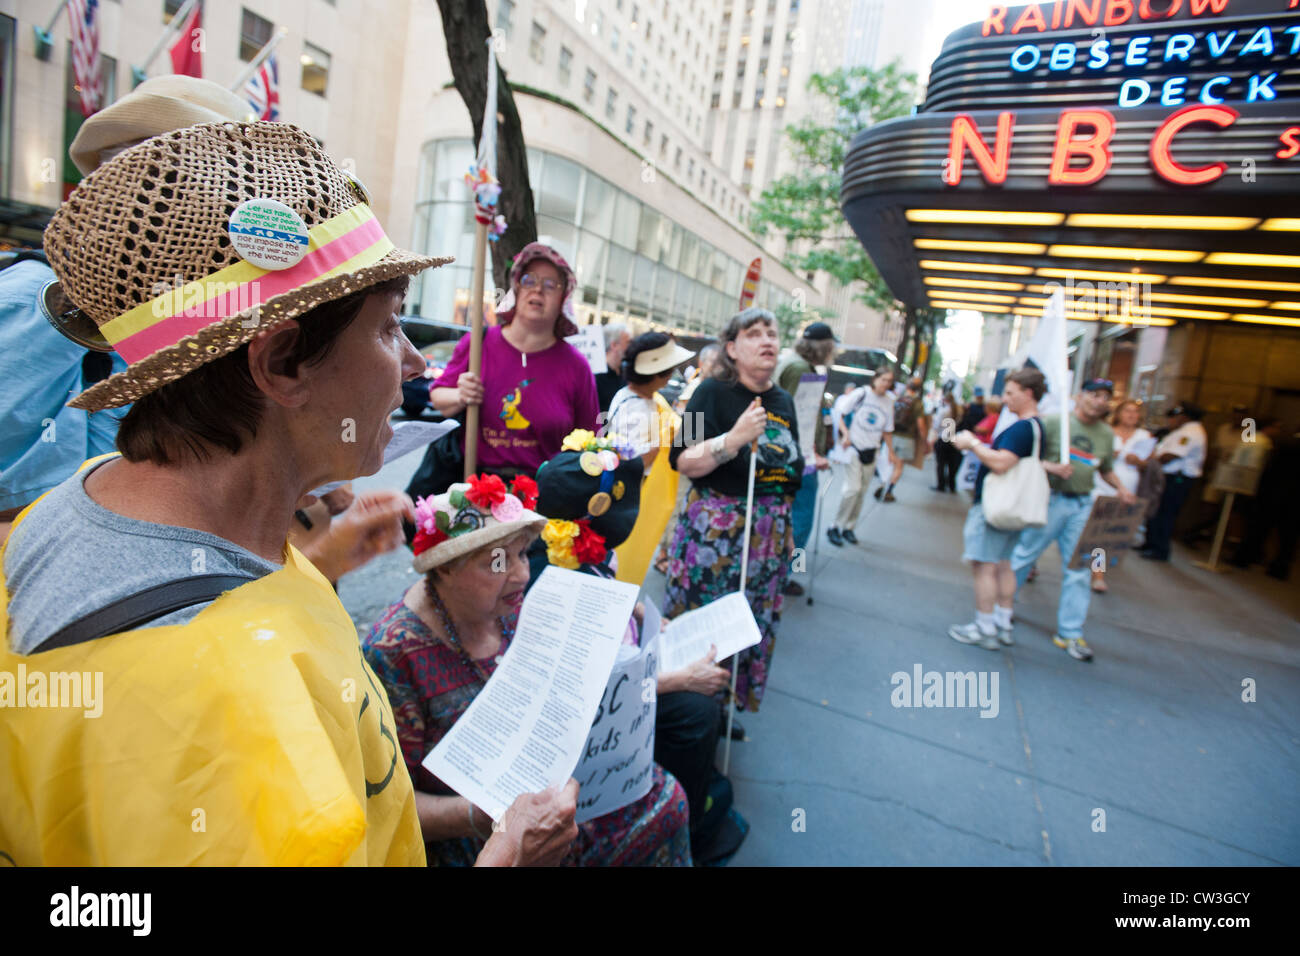 Anti-war groups protest in front of NBC in New York against the new reality television program 'Stars Earn Stripes'. - Stock Image